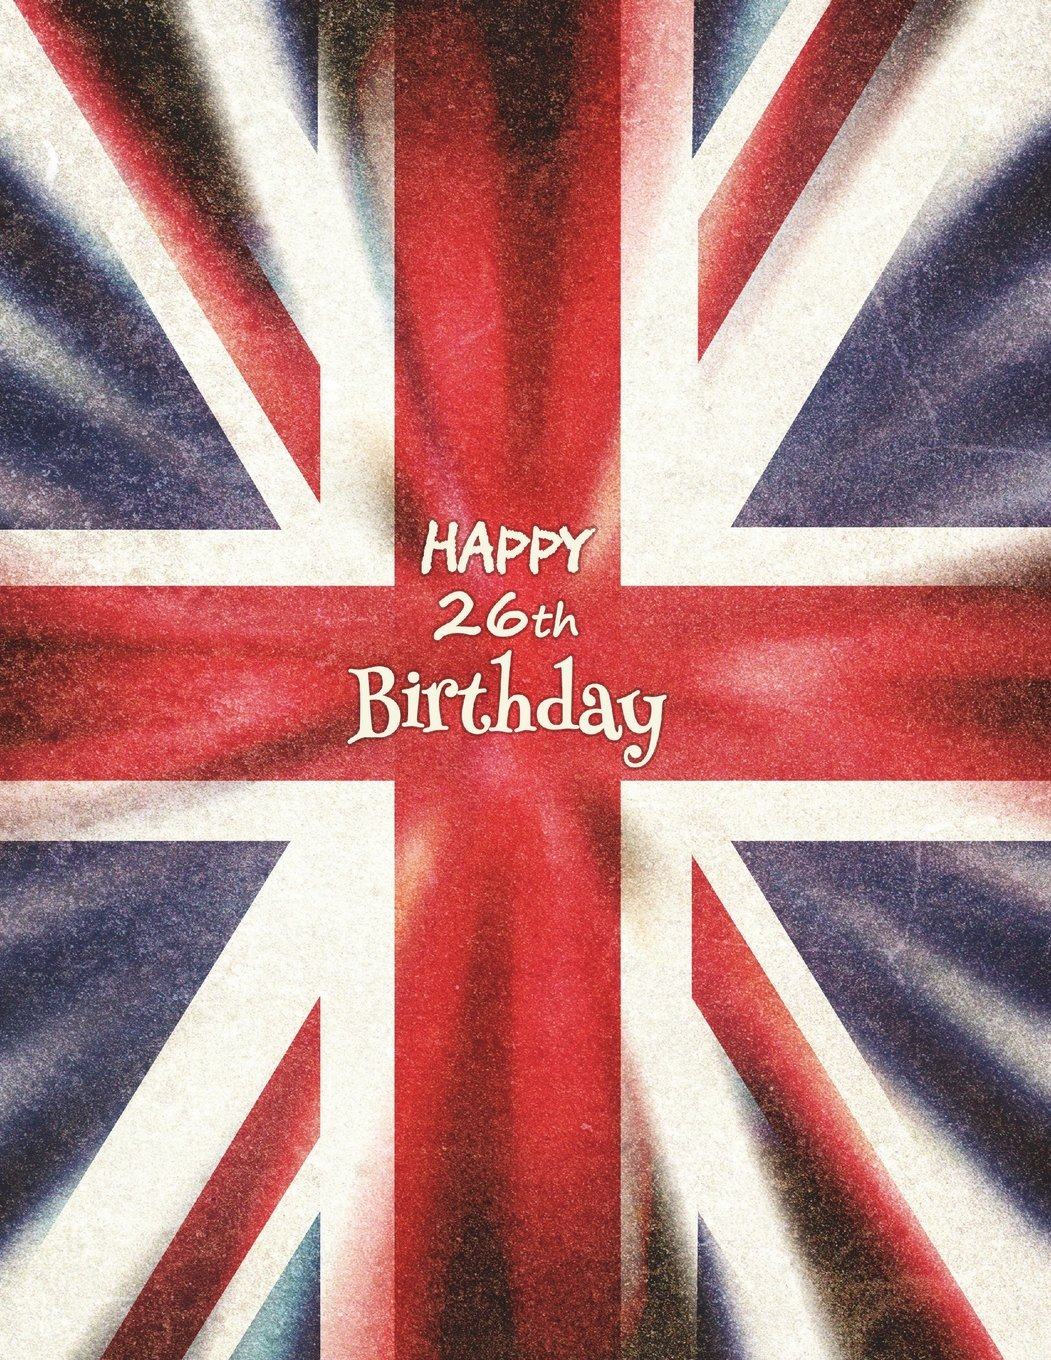 """Happy 26th Birthday: Journal, Notebook, Diary, 365 Lined Pages, Union Jack Themed Birthday Gifts for 26 Year Old Women or Men, Daughter or Son, Wife ... Best Friend, Co-Worker, Book 8 1/2"""" x 11"""" pdf epub"""